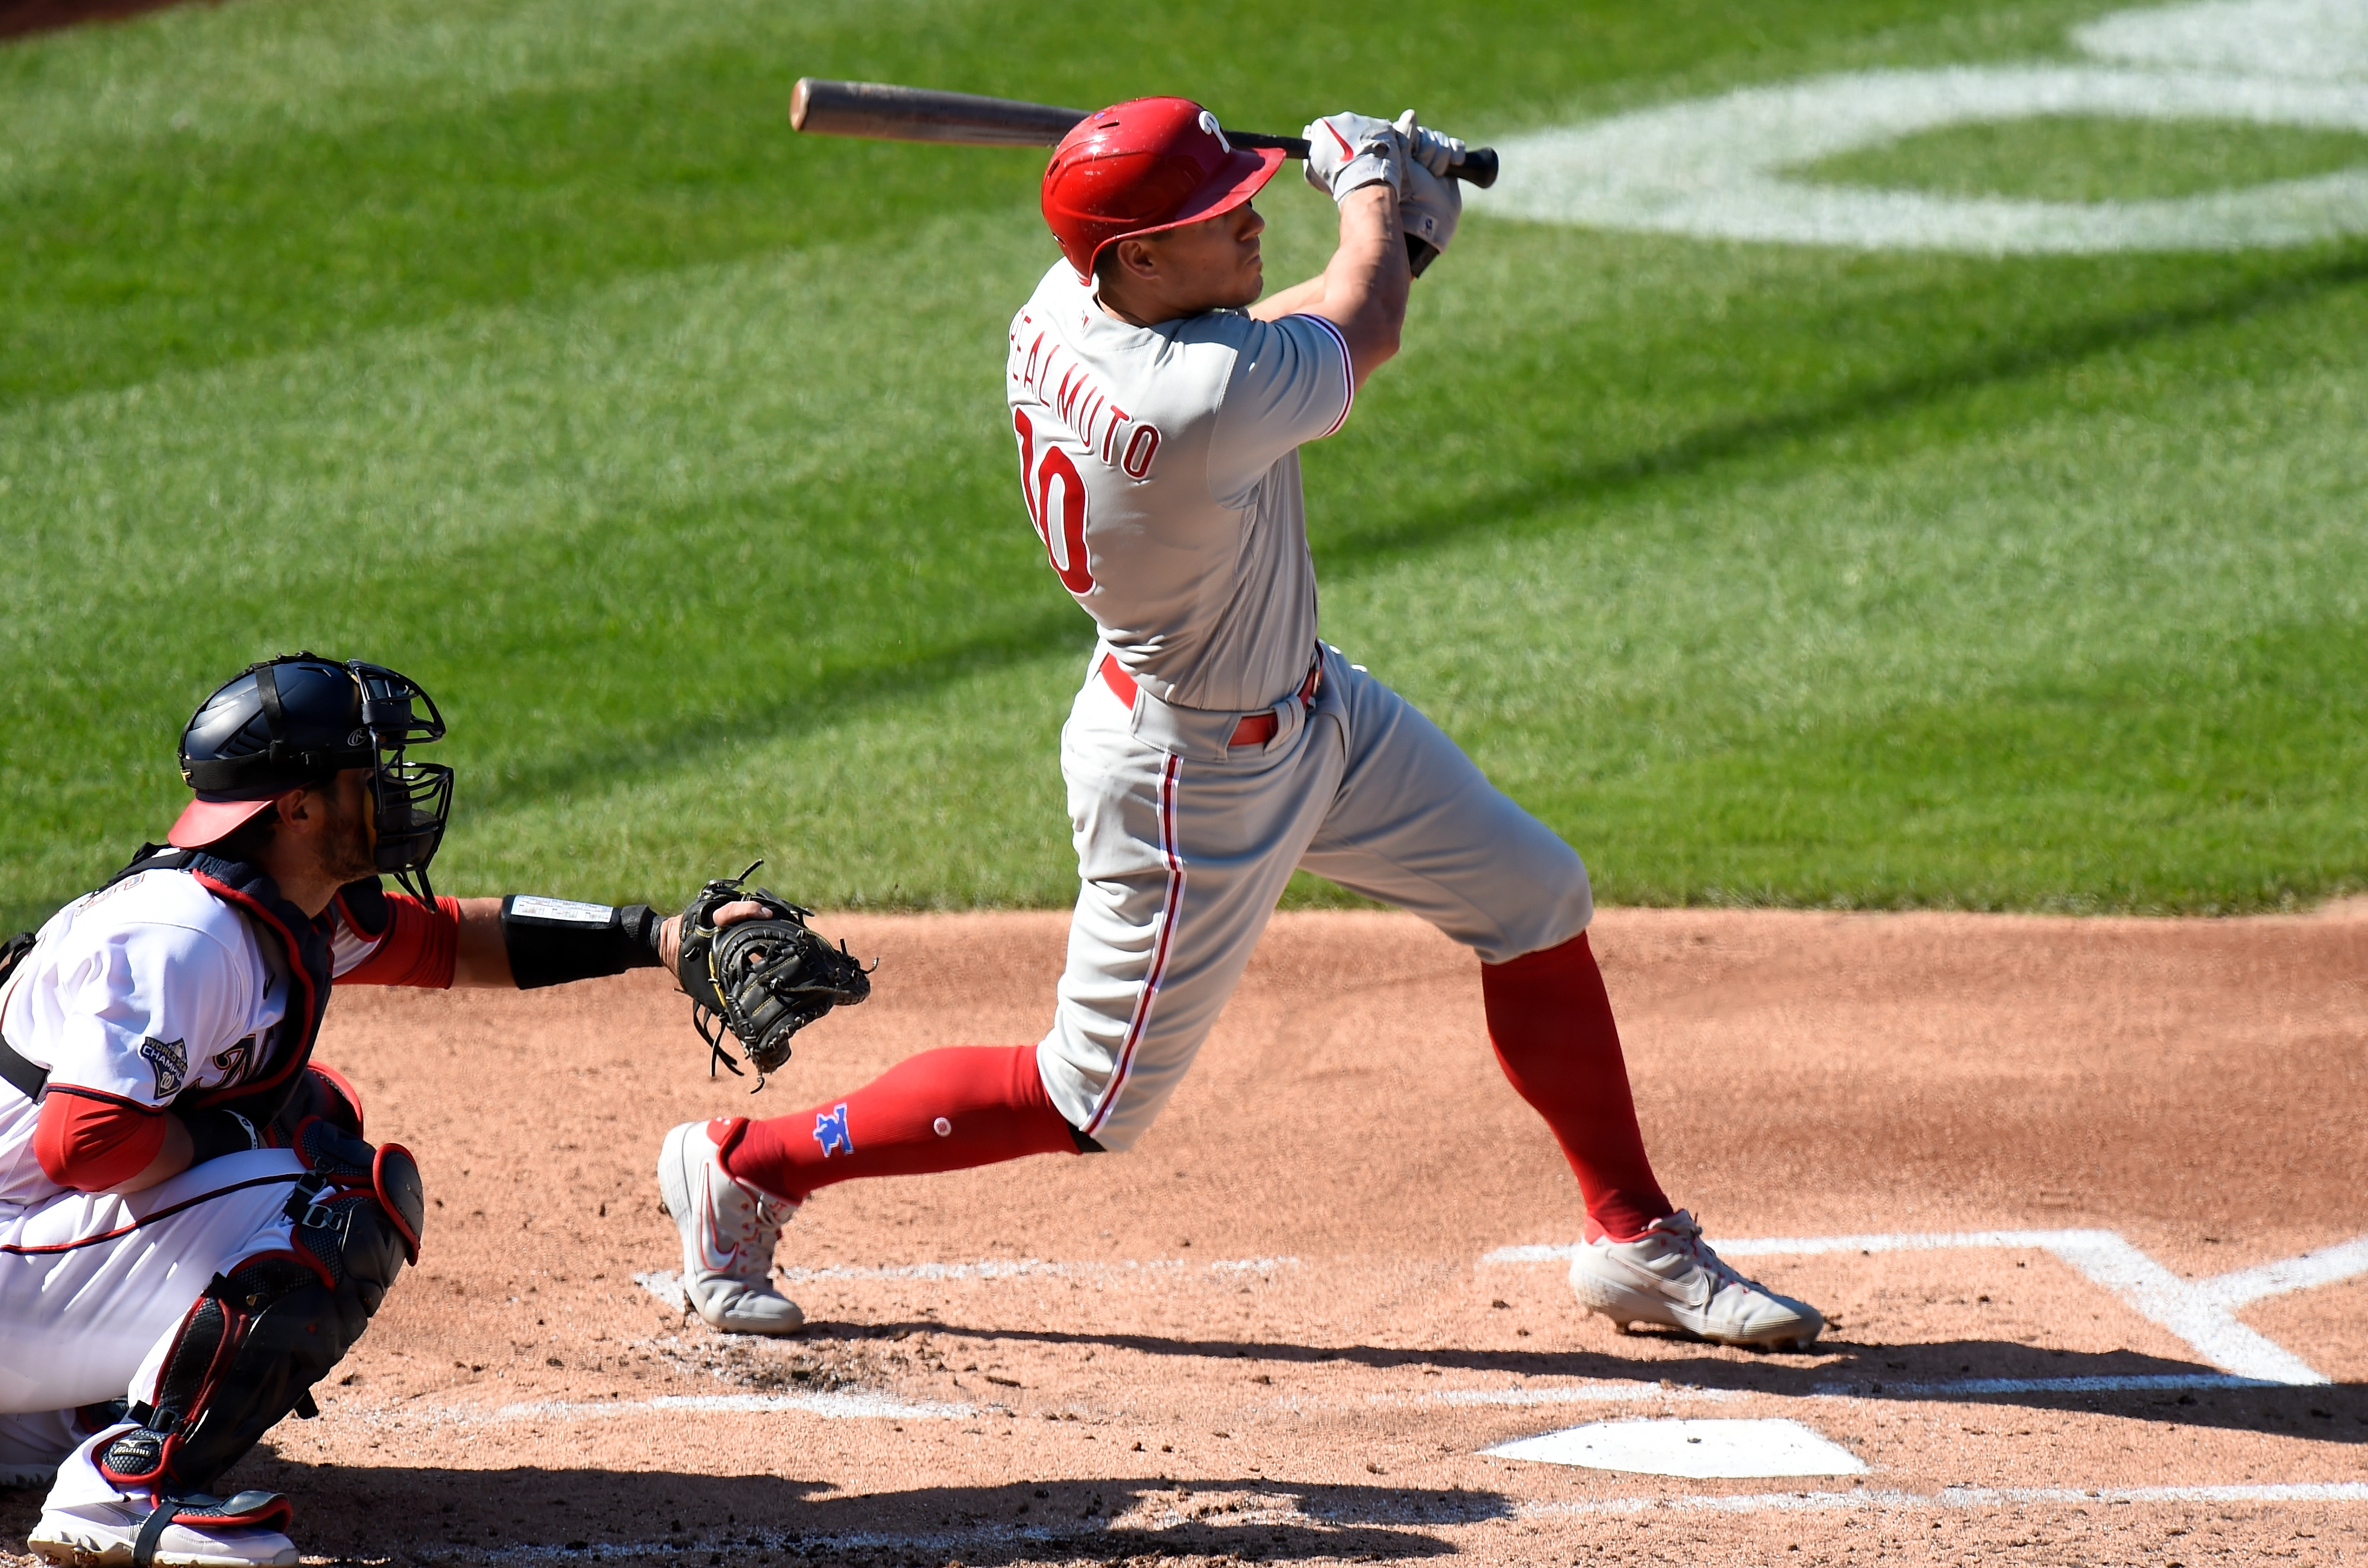 J.T. Realmuto #10 of the Philadelphia Phillies bats against the Washington Nationals during the first game of a doubleheader at Nationals Park on September 22, 2020 in Washington, DC.